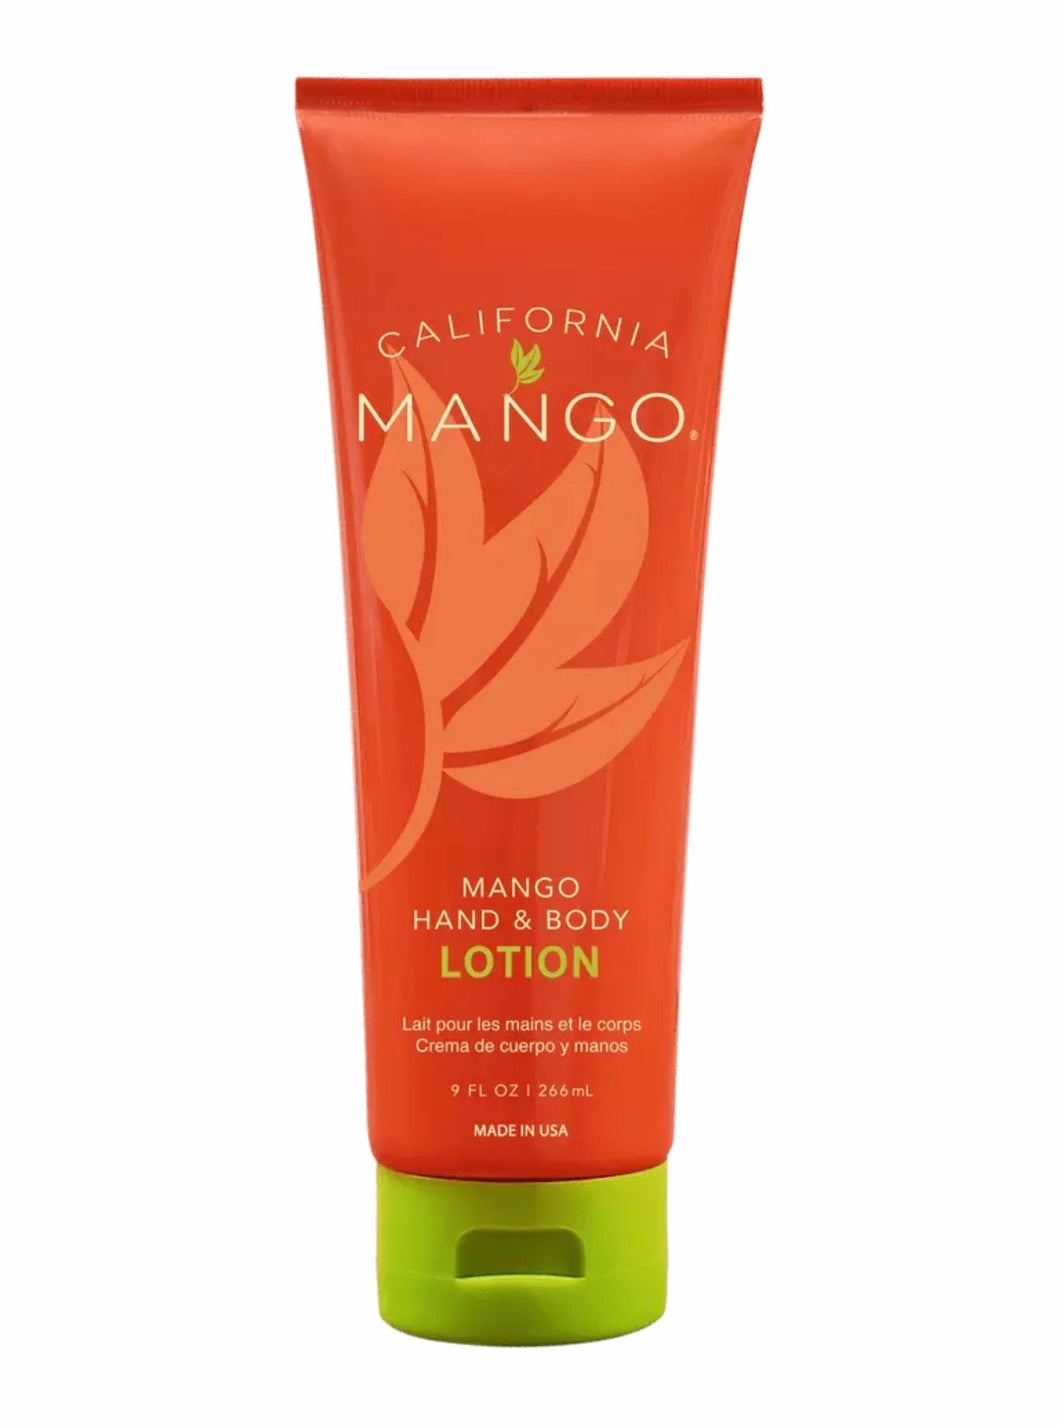 California Mango hand and body lotion 9oz